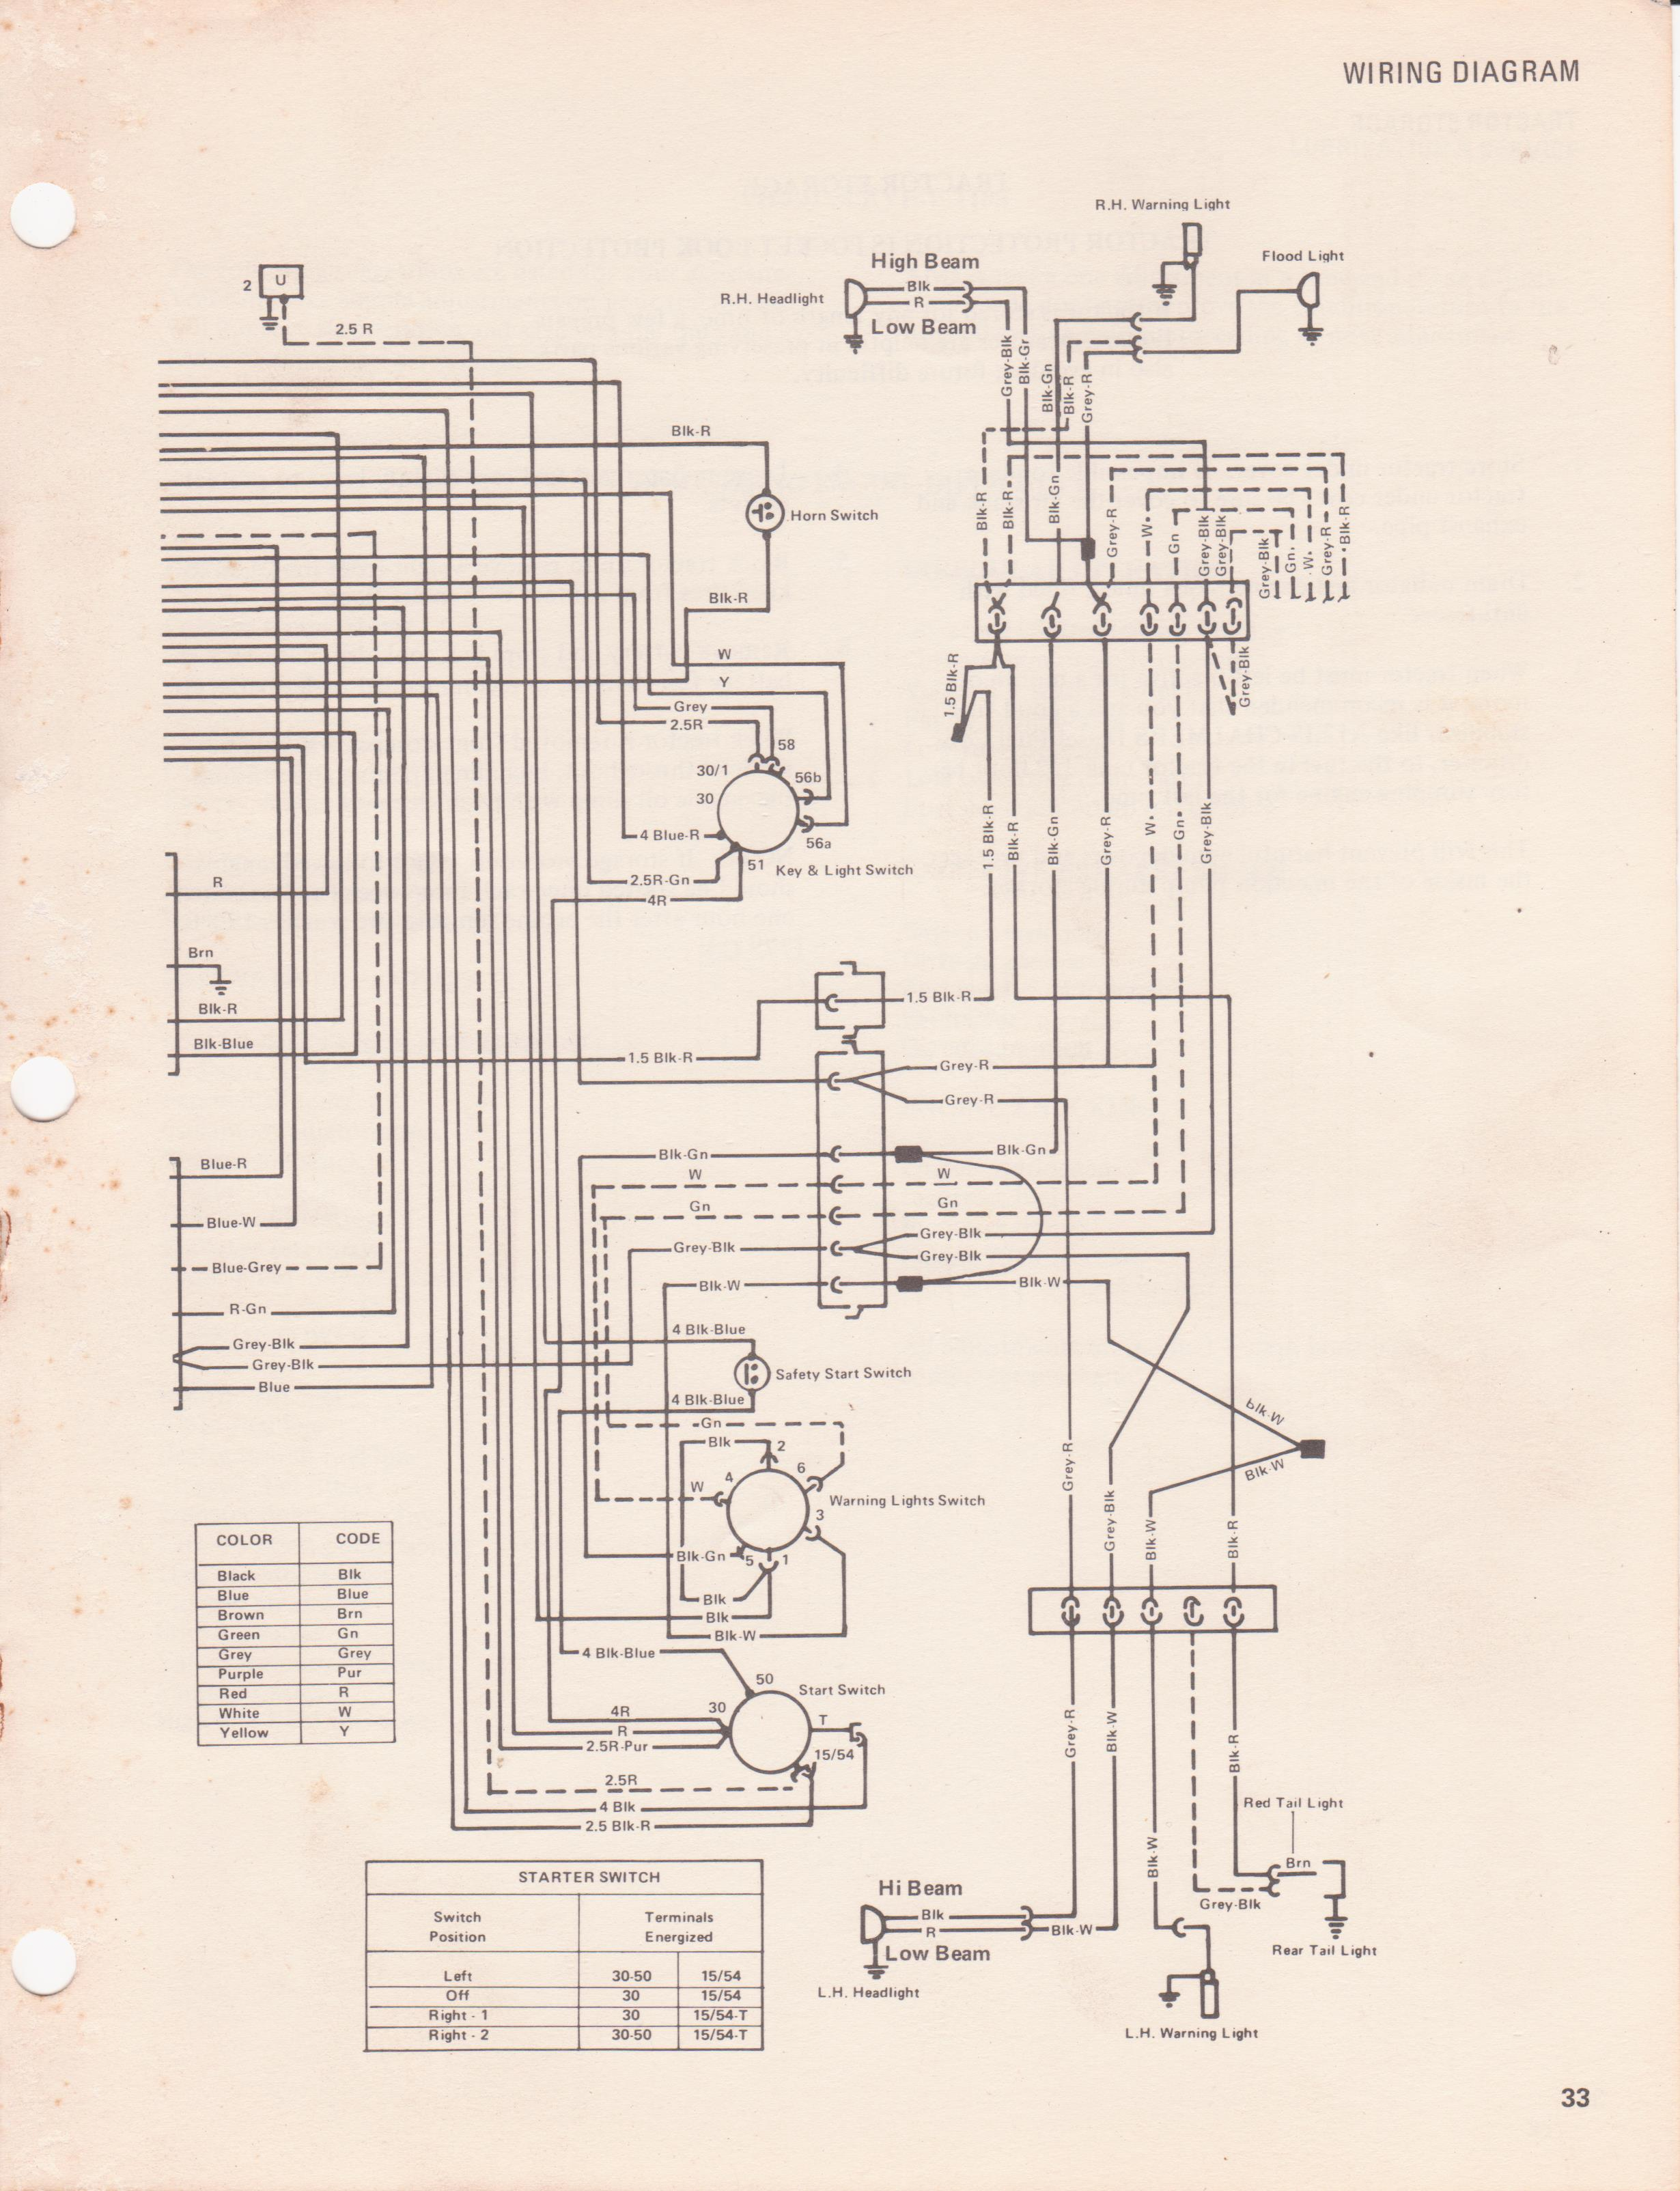 Agco Allis Wiring Diagram | Wiring Diagram on